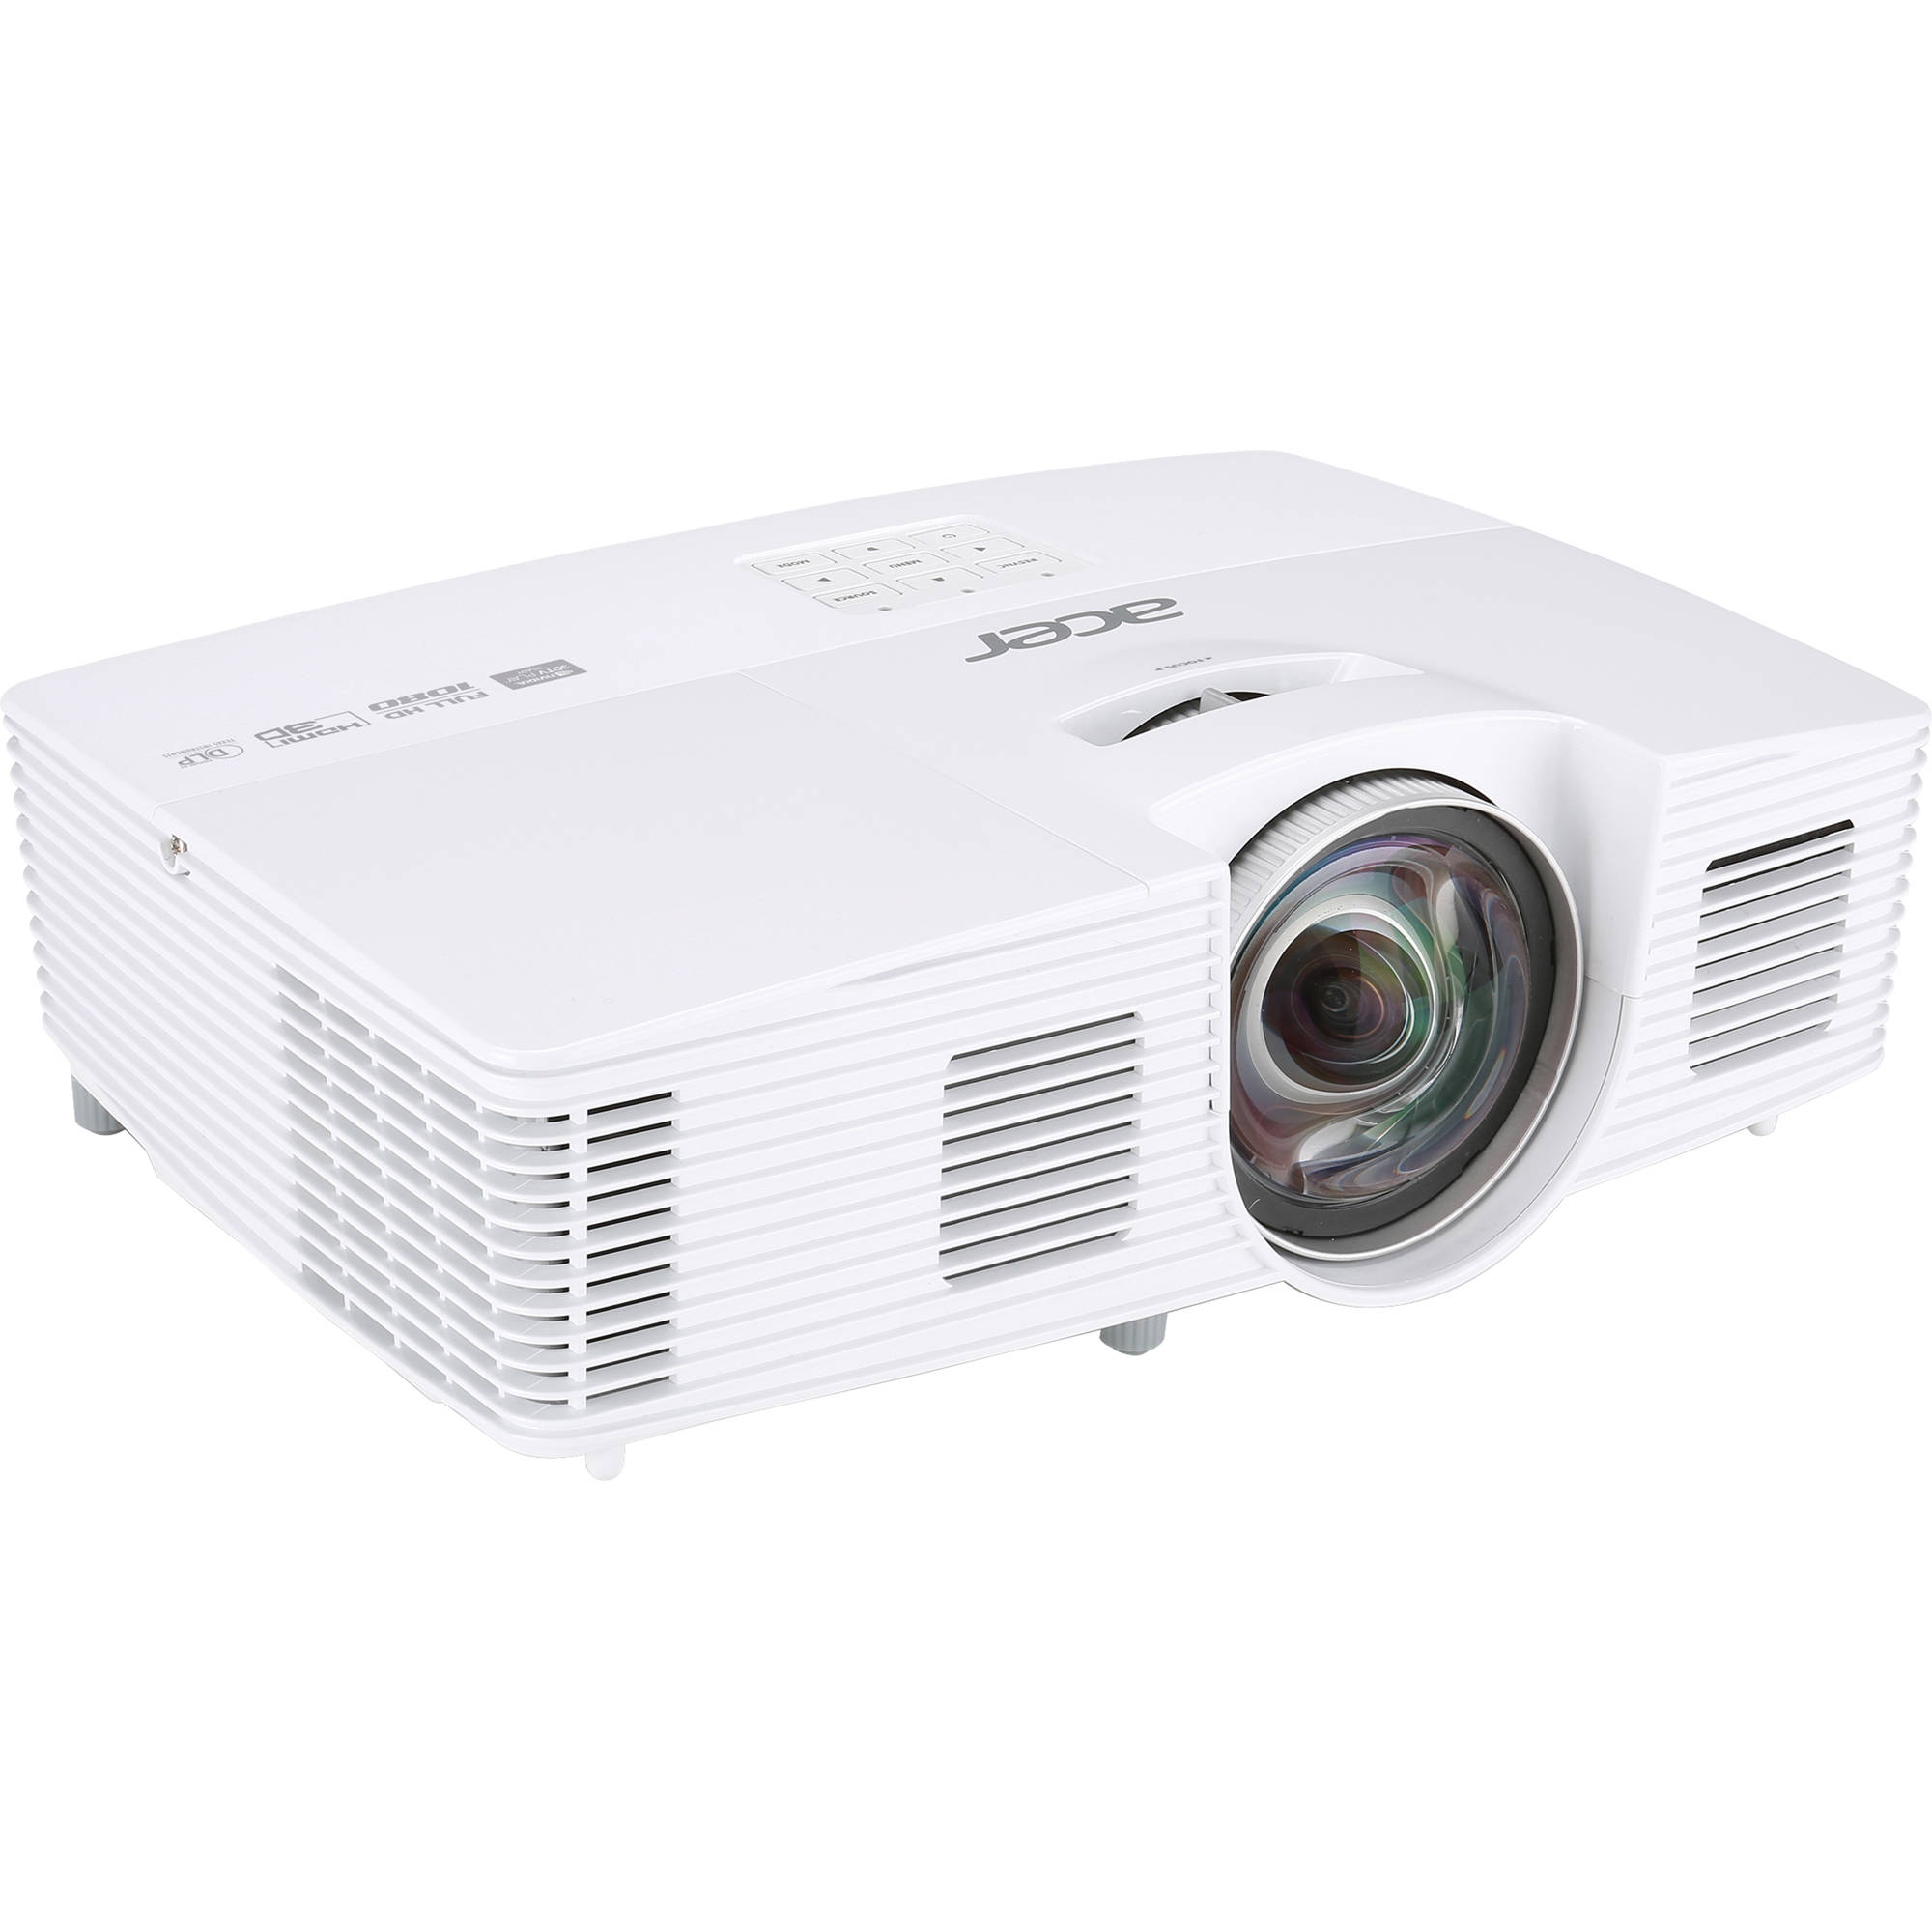 acer h6517st 3000 lumen 1080p short throw dlp 3d mr jla11 009 rh bhphotovideo com acer projector manual p6500 acer projector manual p6500